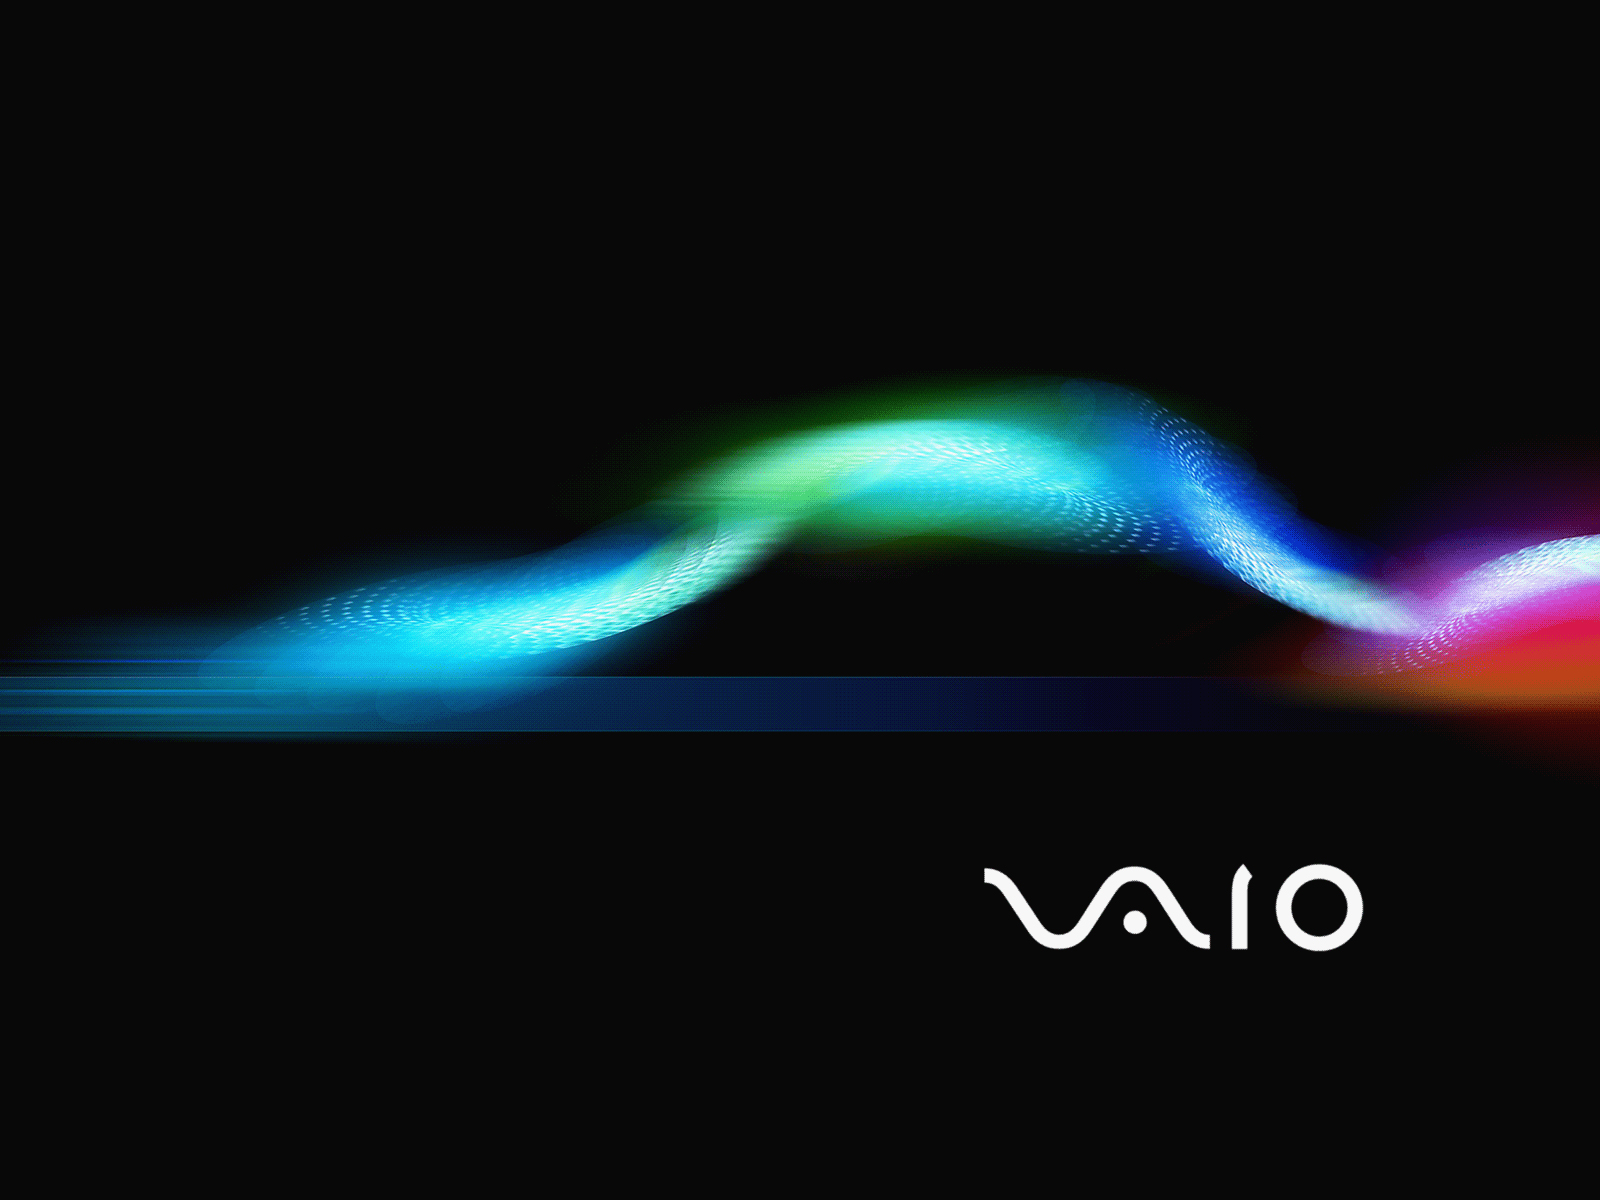 Windows wallpapers Sony Vaio wallpapers 1600x1200